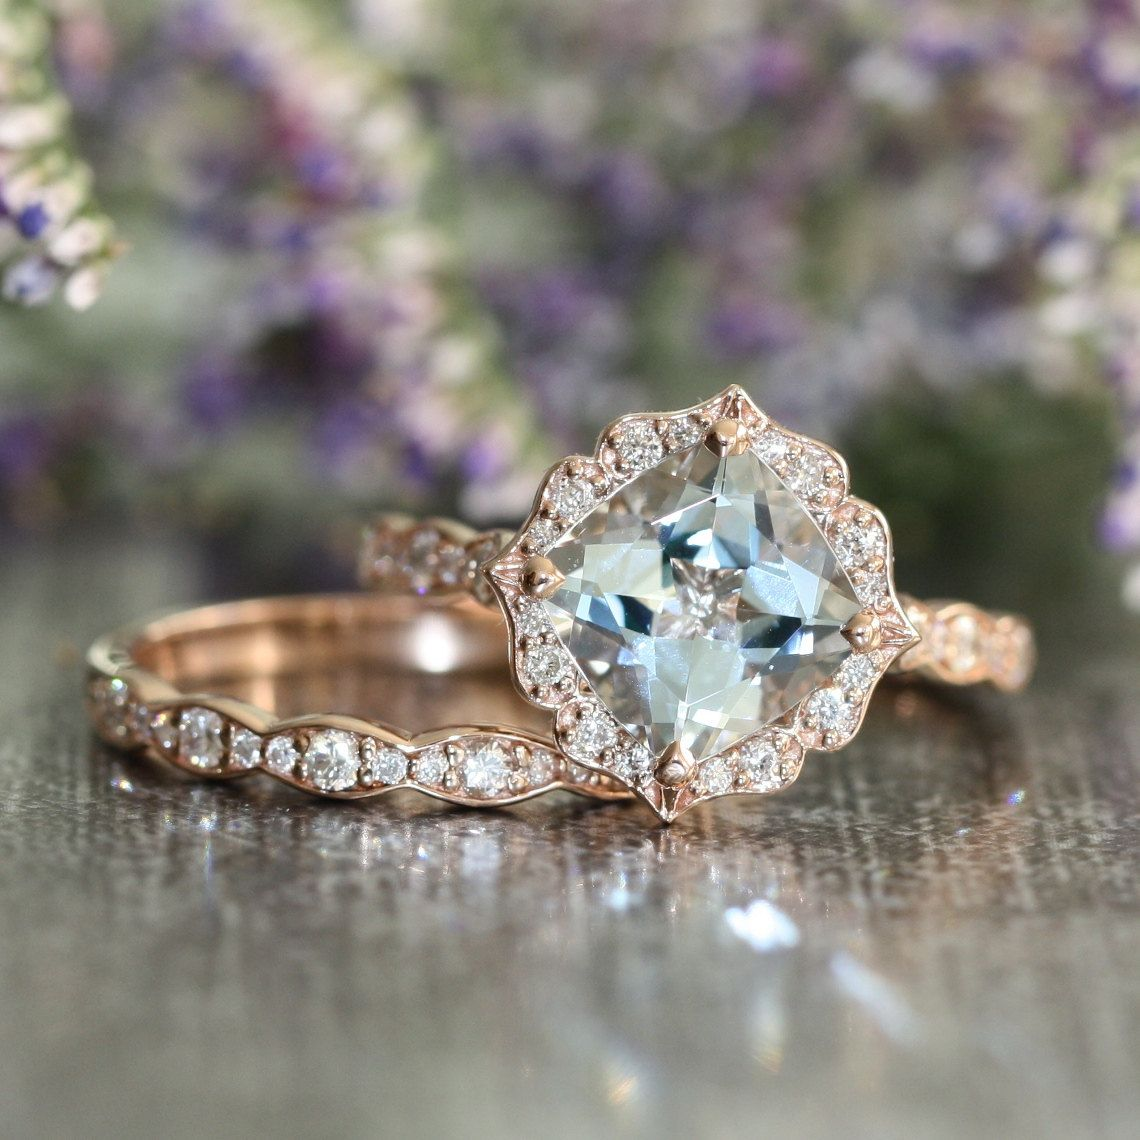 Vintage Floral Aquamarine Engagement Ring And Scalloped Diamond Wedding  Band Bridal Set In 14k Rose Gold 8x8mm Cushion Gemstone Ring Set